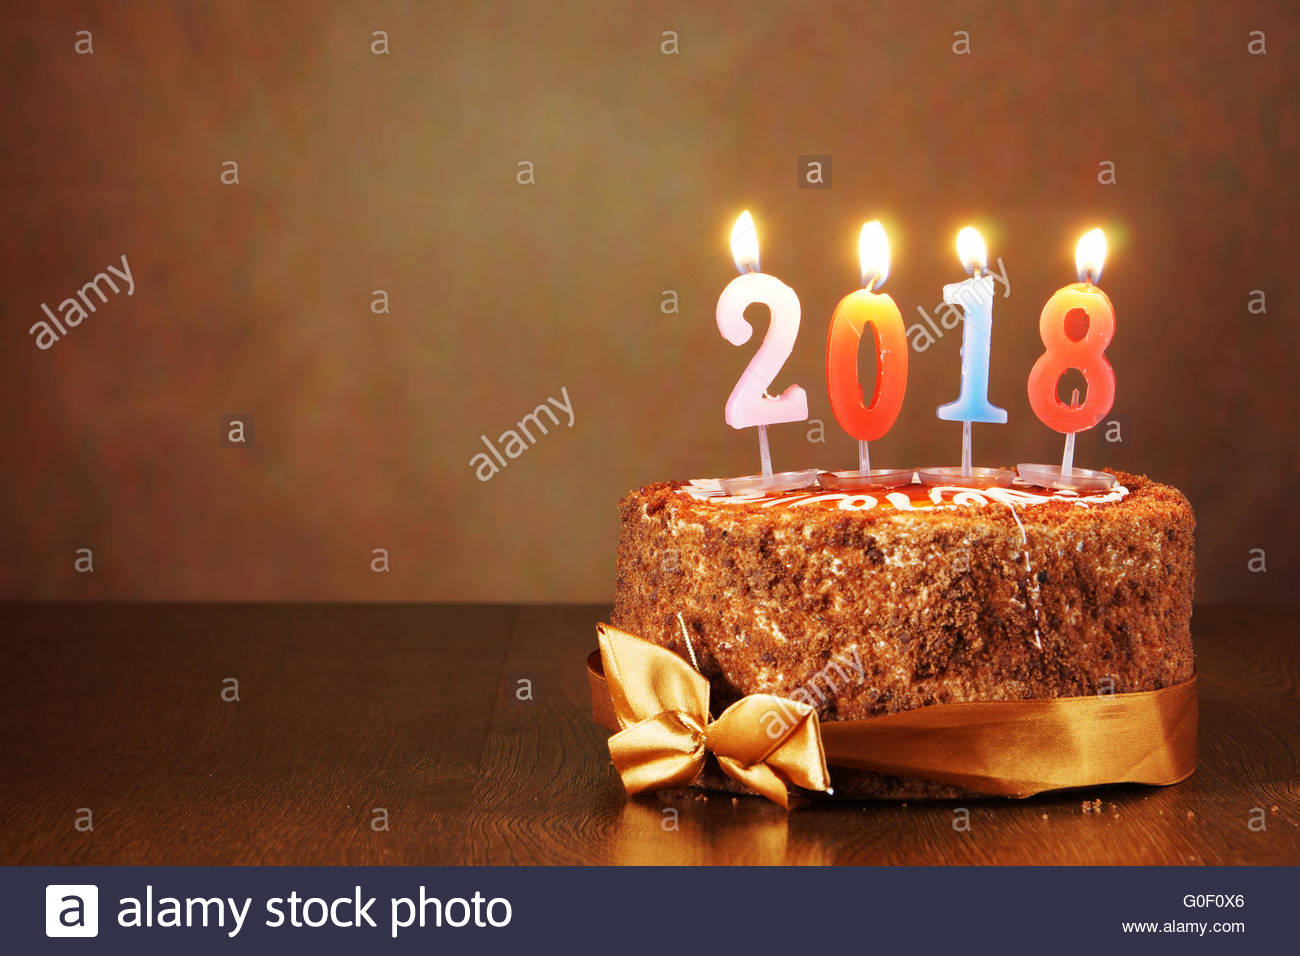 New Year Cake Stock Photos & New Year Cake Stock Images   Alamy